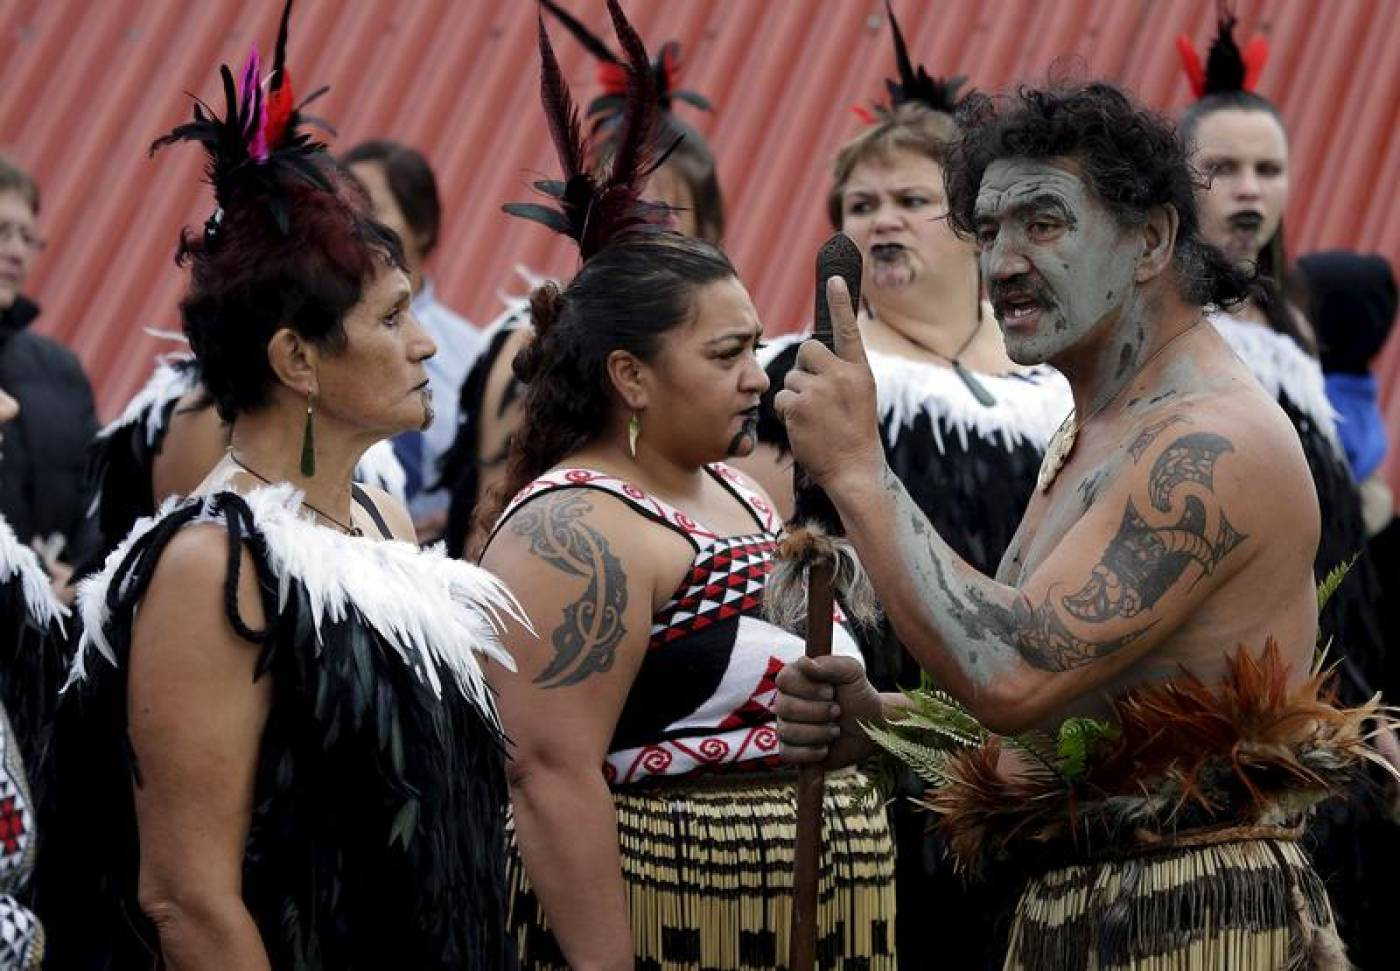 Thousands occupy disputed land in New Zealand in M?ori rights protest